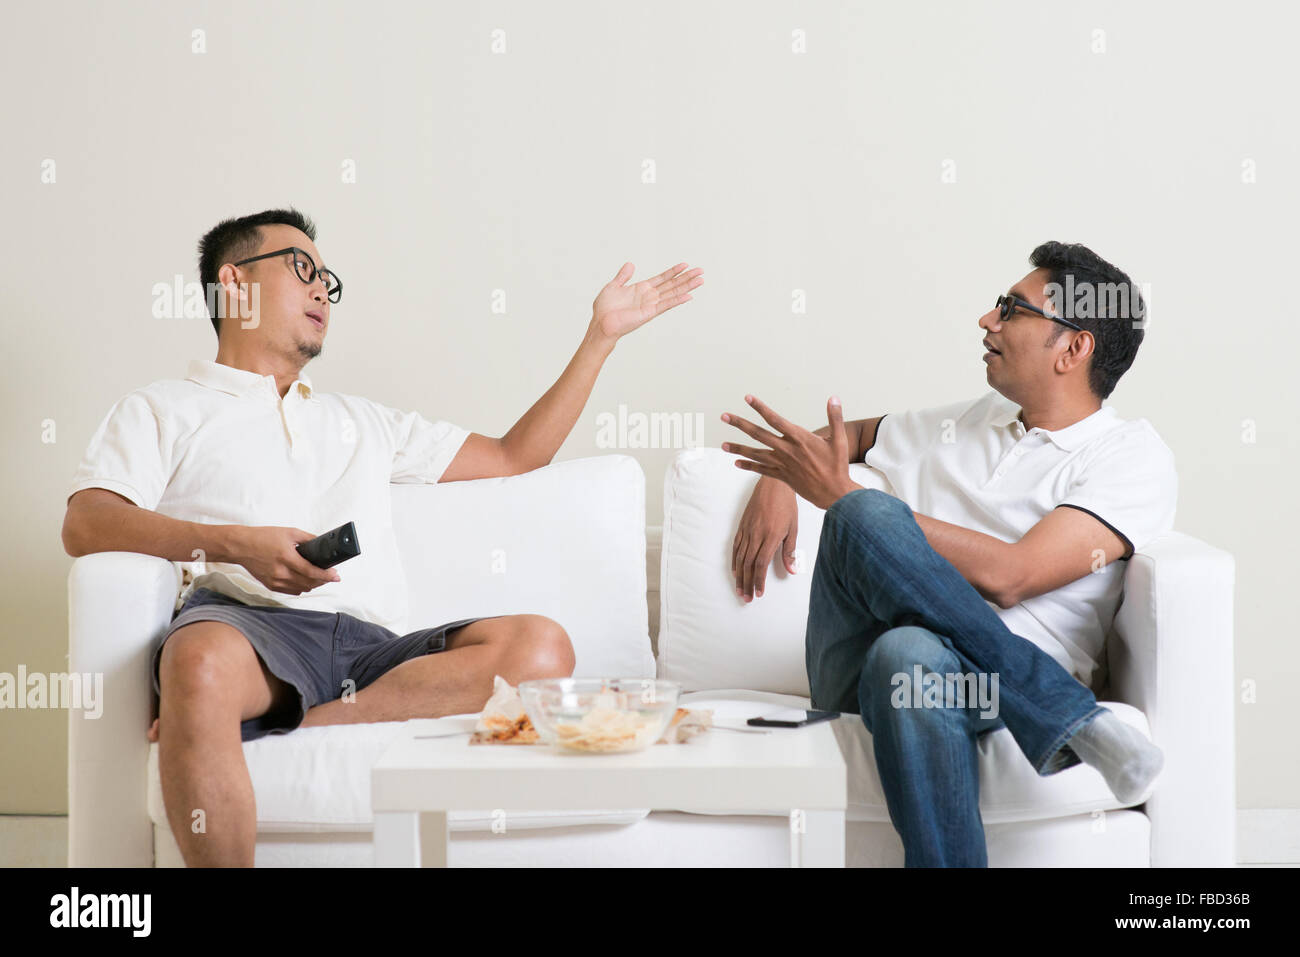 Men arguing. Two male friend disagree to each other and having argument at home. Multiracial people friendship. - Stock Image